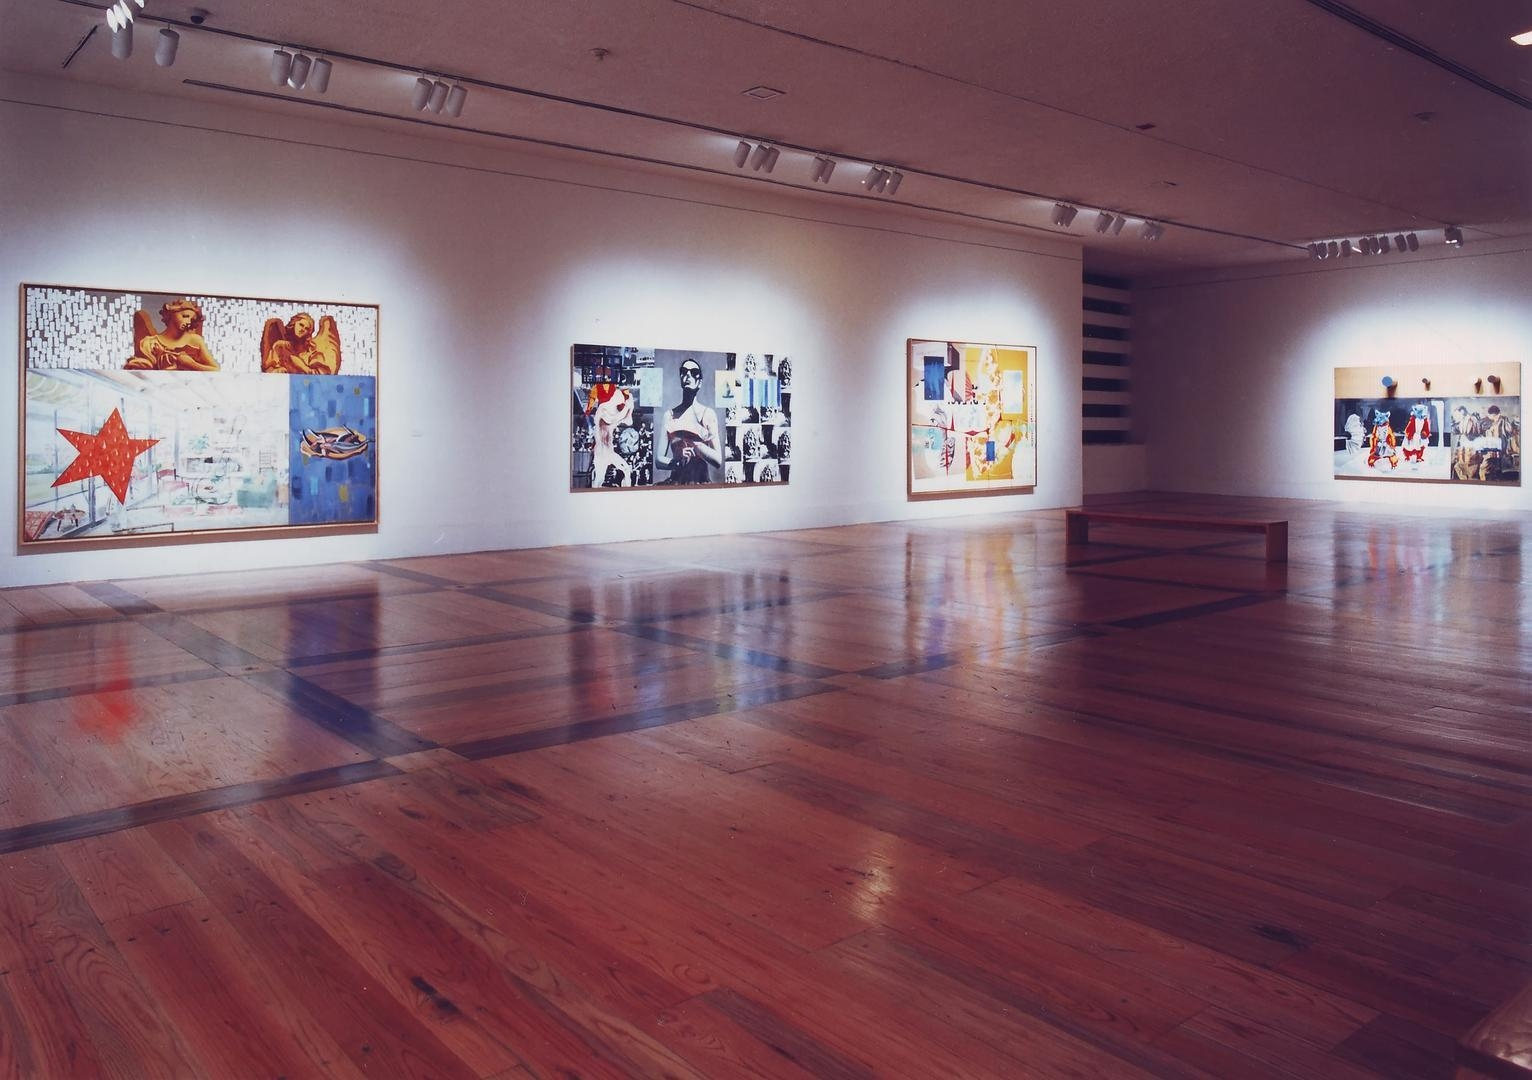 David Salle, Paintings and Works on Paper, 1980-1999